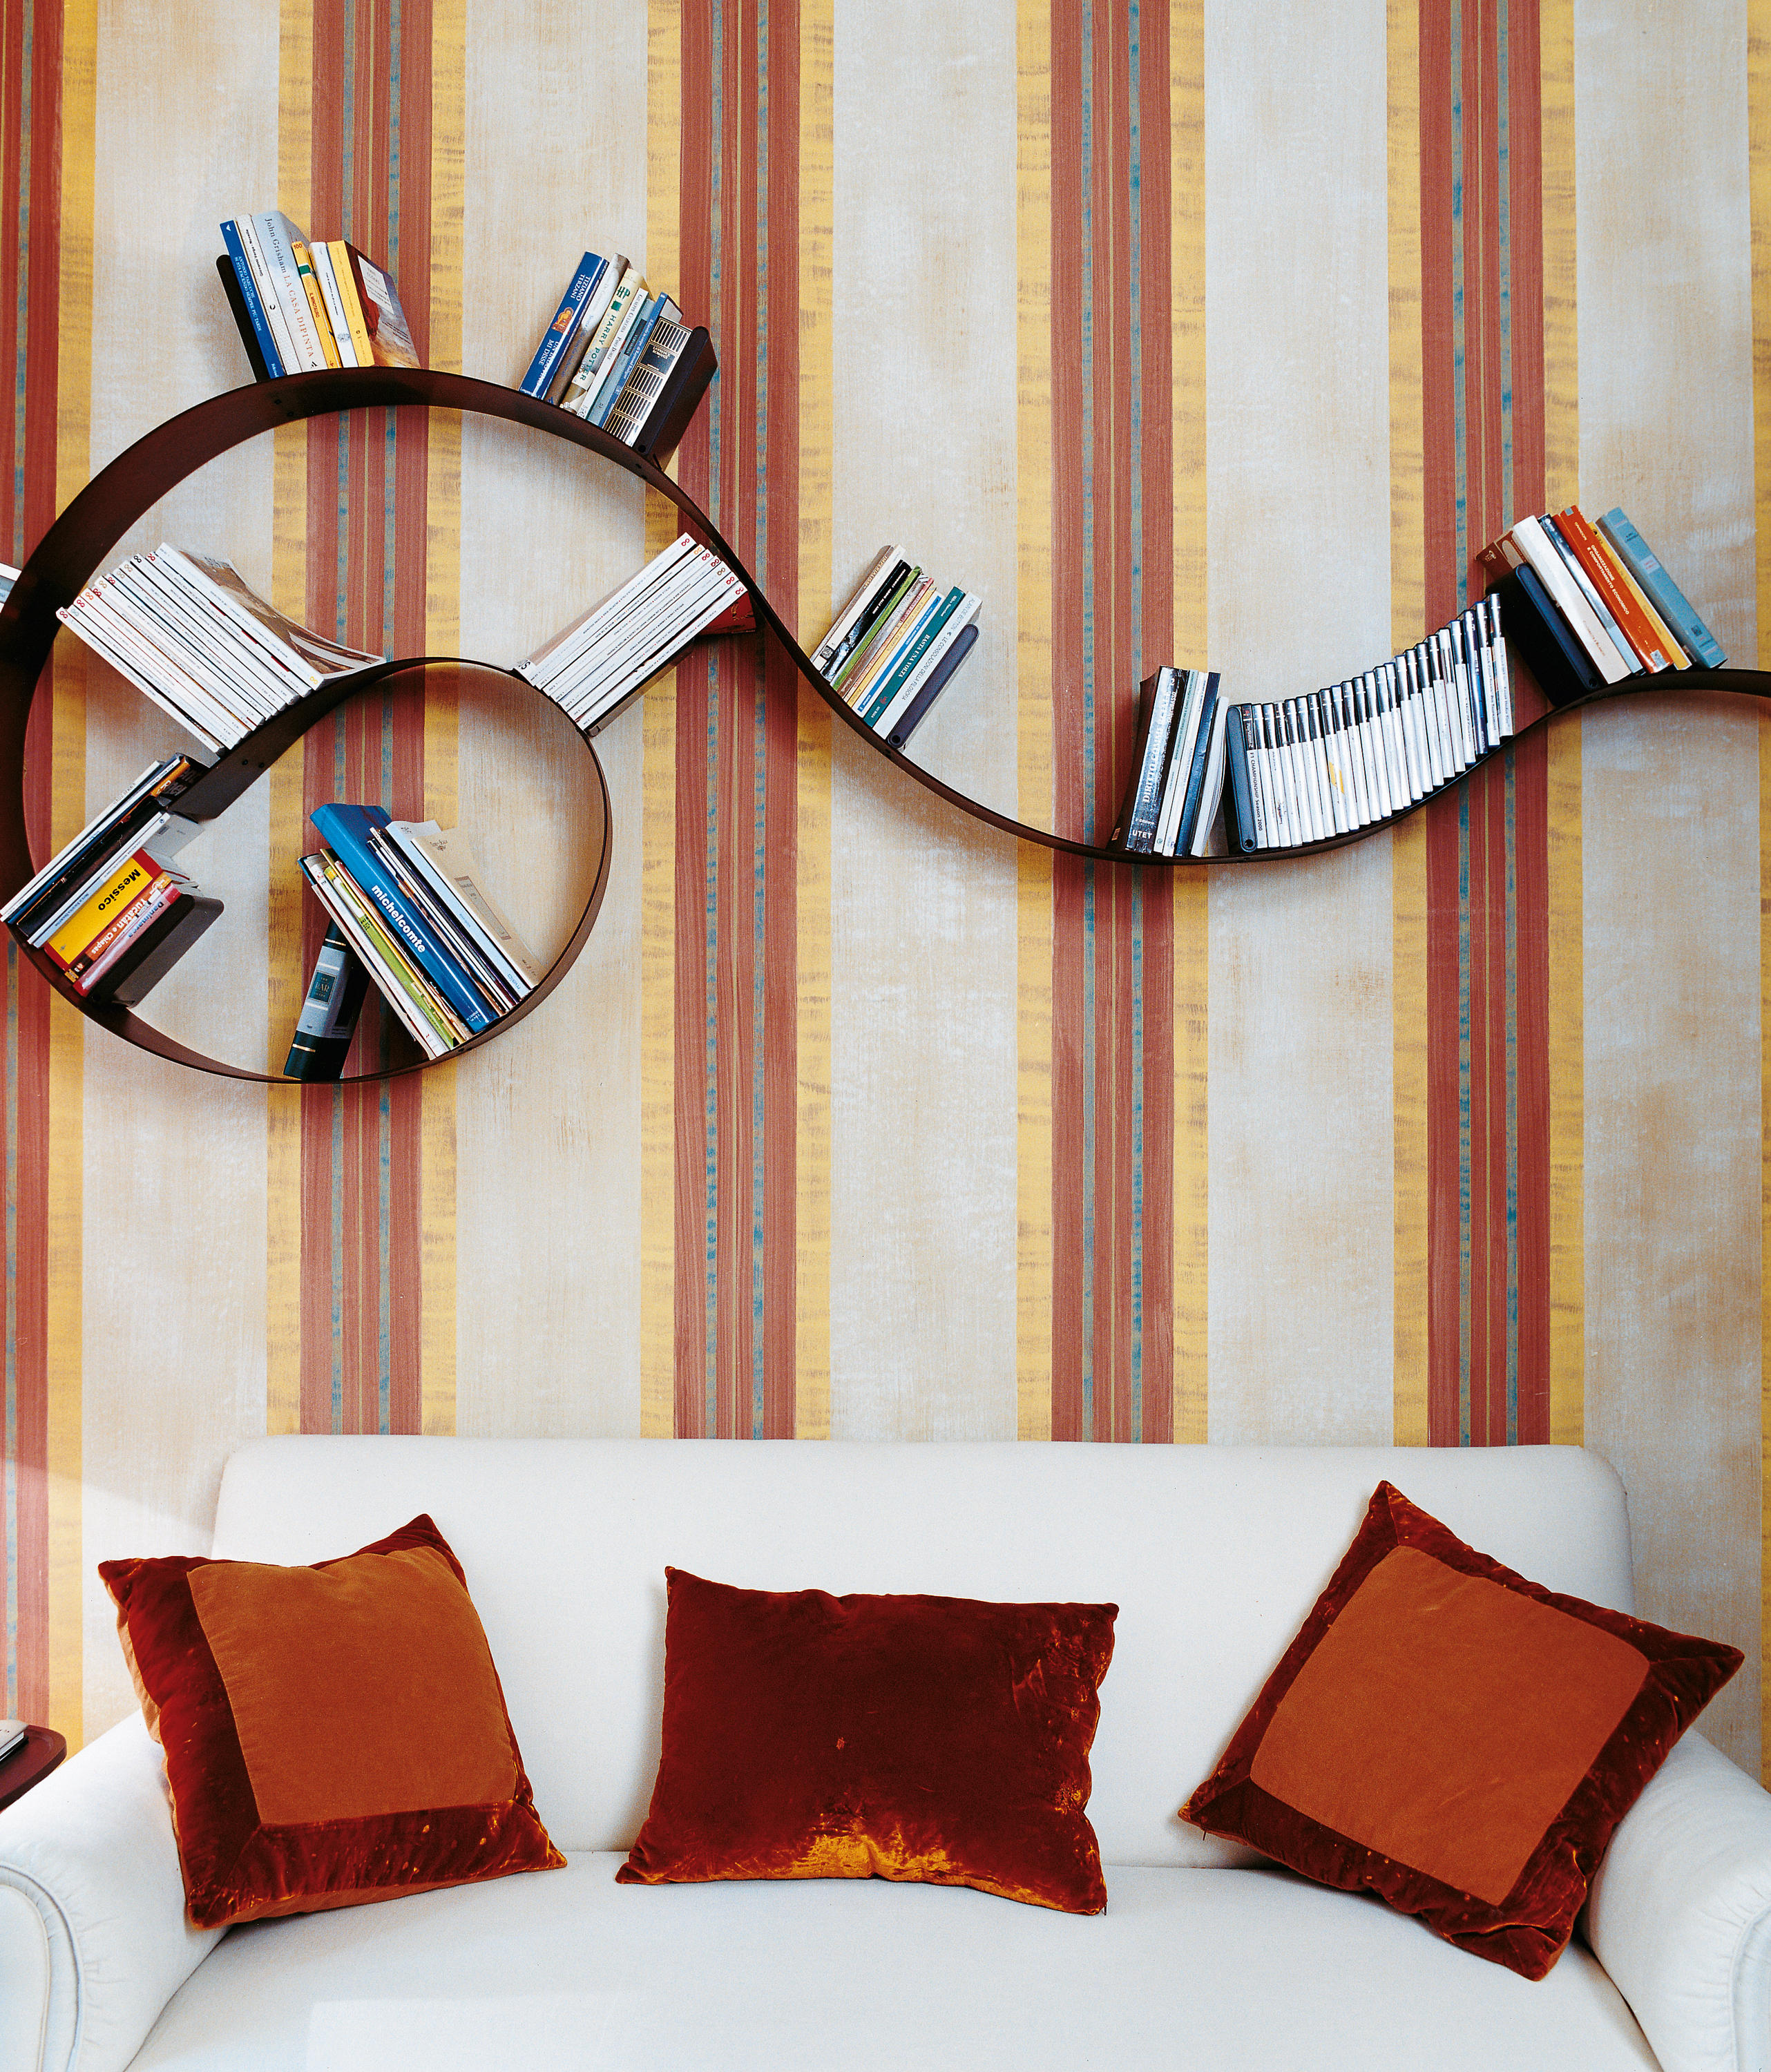 BOOKWORM - Shelving from Kartell | Architonic